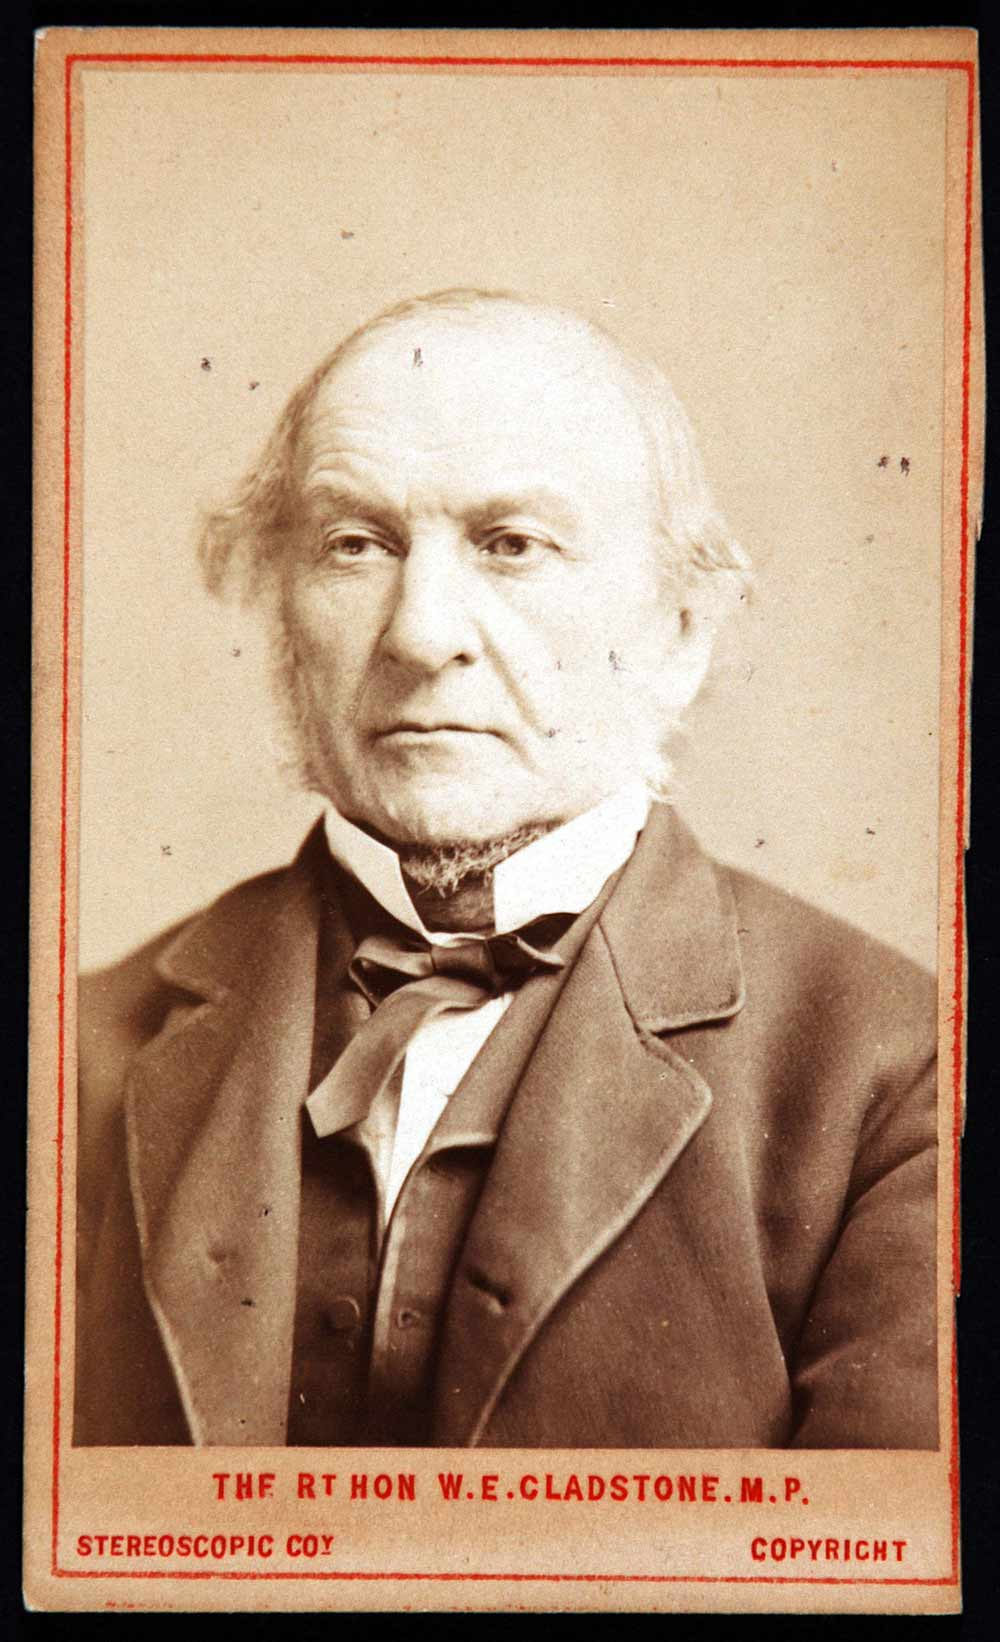 Carte de visite of William Ewart Gladstone by The London Stereoscopic & Photographic Company, undated.